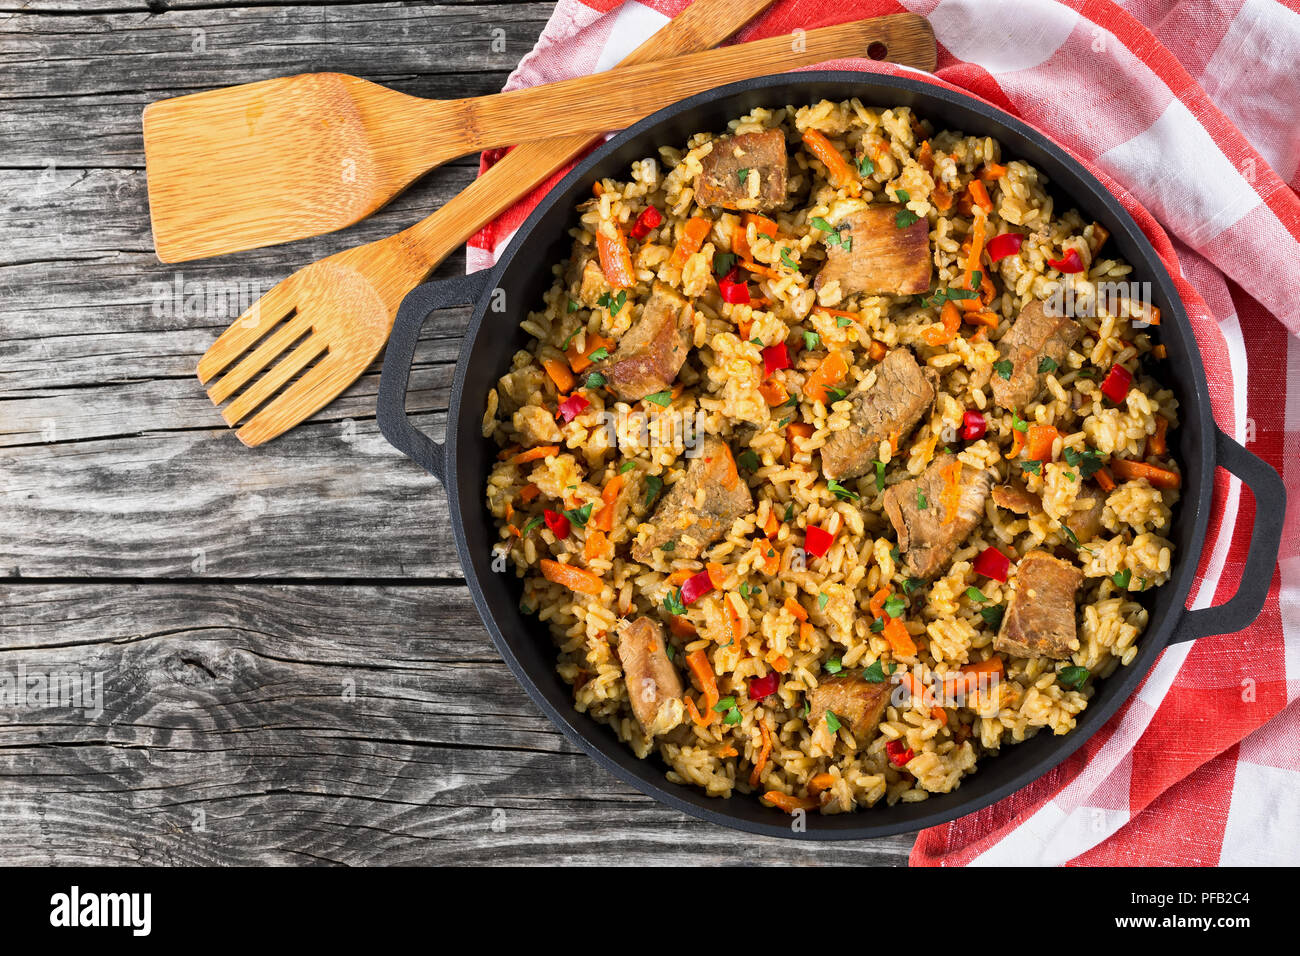 Homemade prepared paella with meat, pepper, vegetables and spices in iron pan with kitchen towel on wooden table, copy space left,  view from above - Stock Image